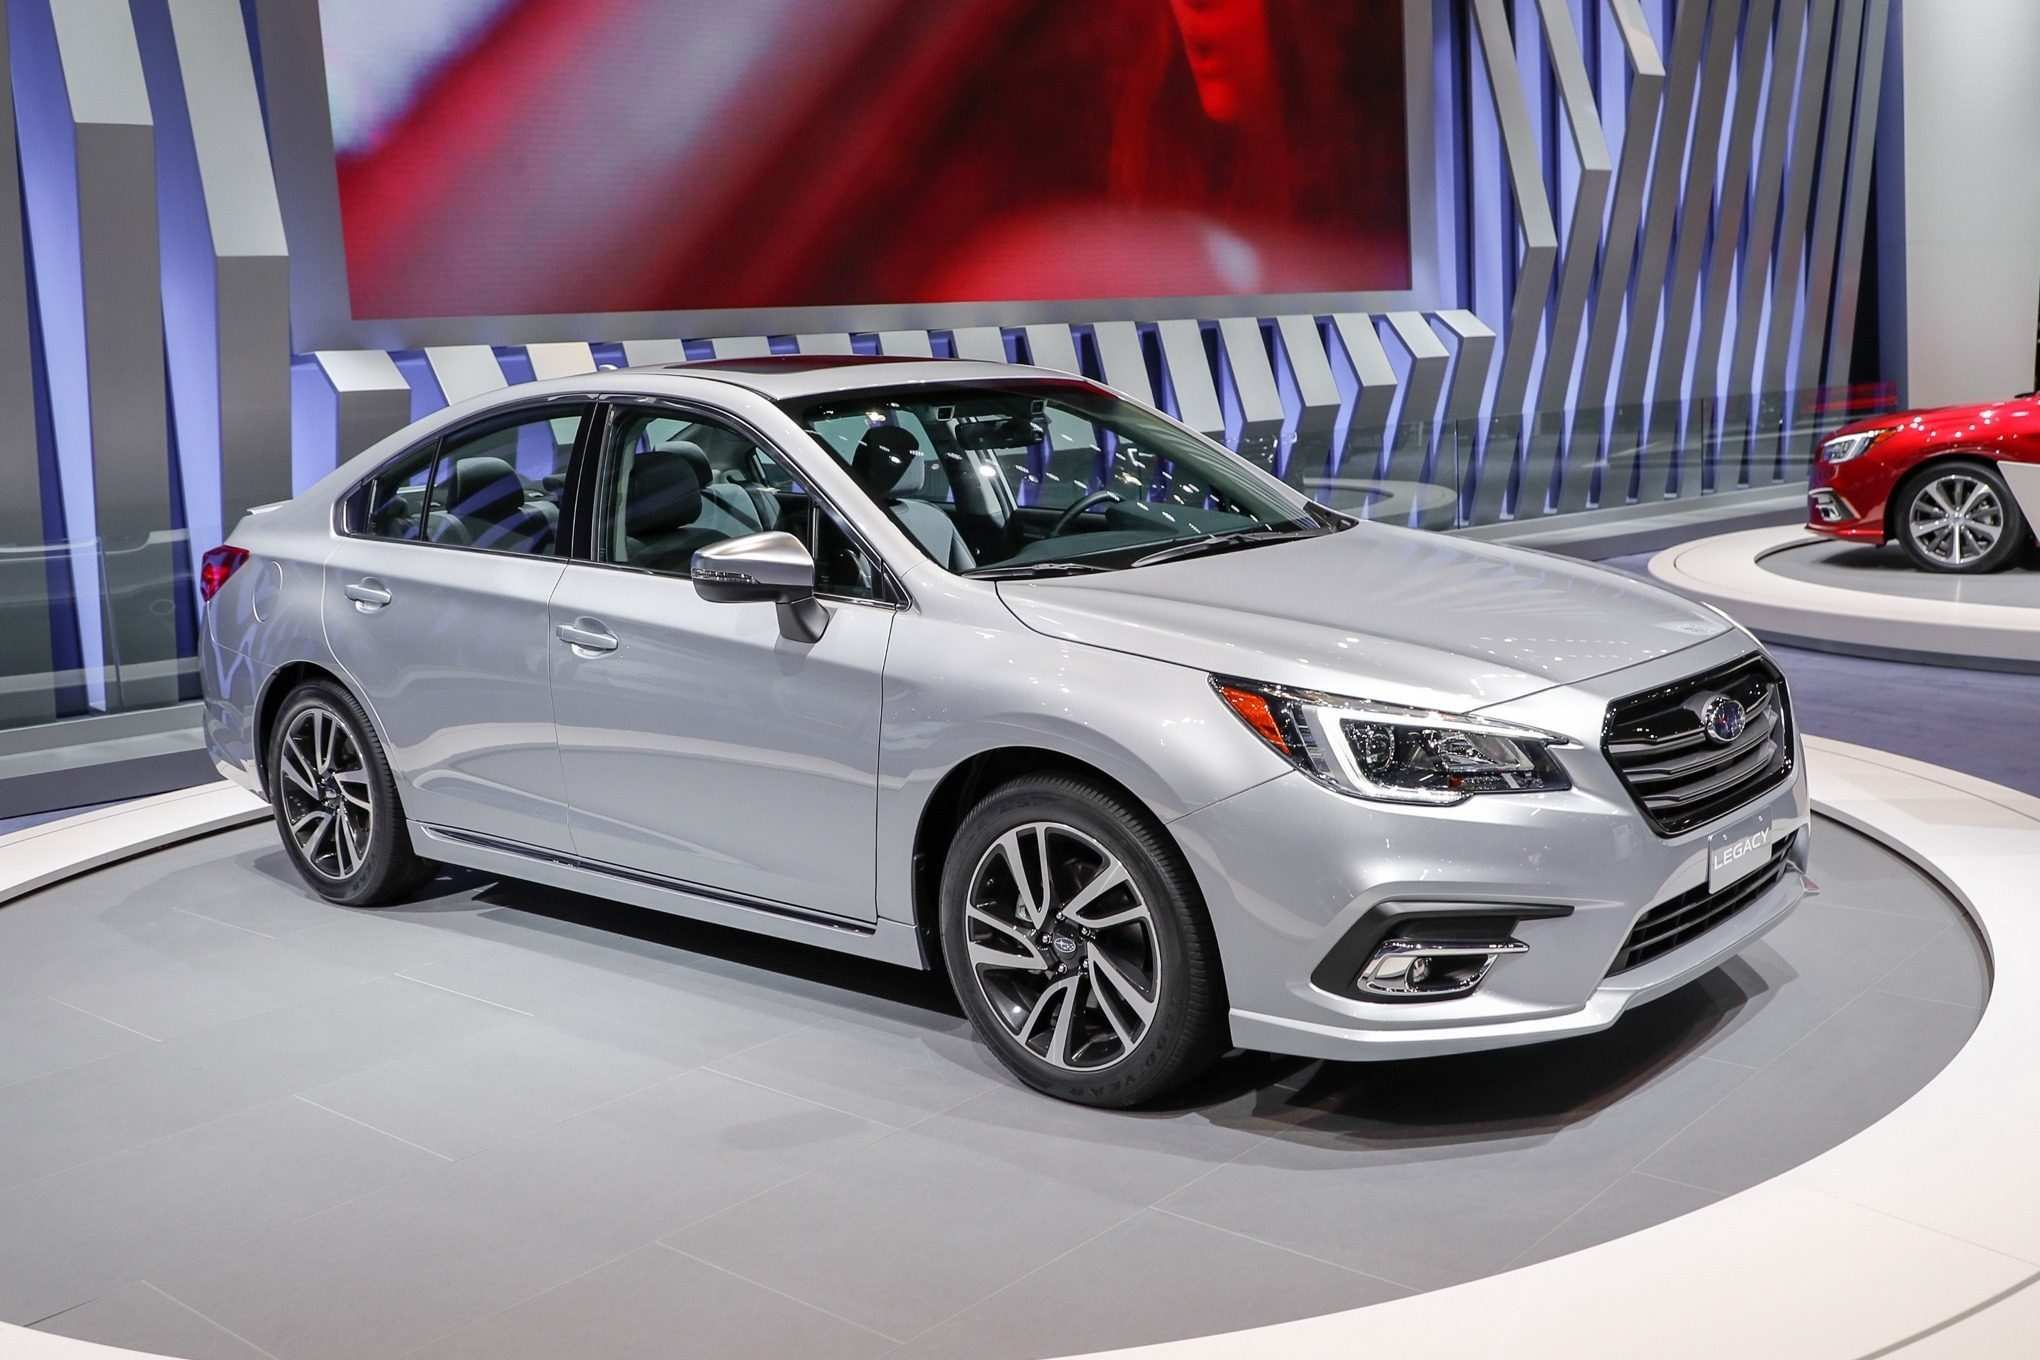 91 Gallery of Subaru Legacy Gt 2019 Review by Subaru Legacy Gt 2019